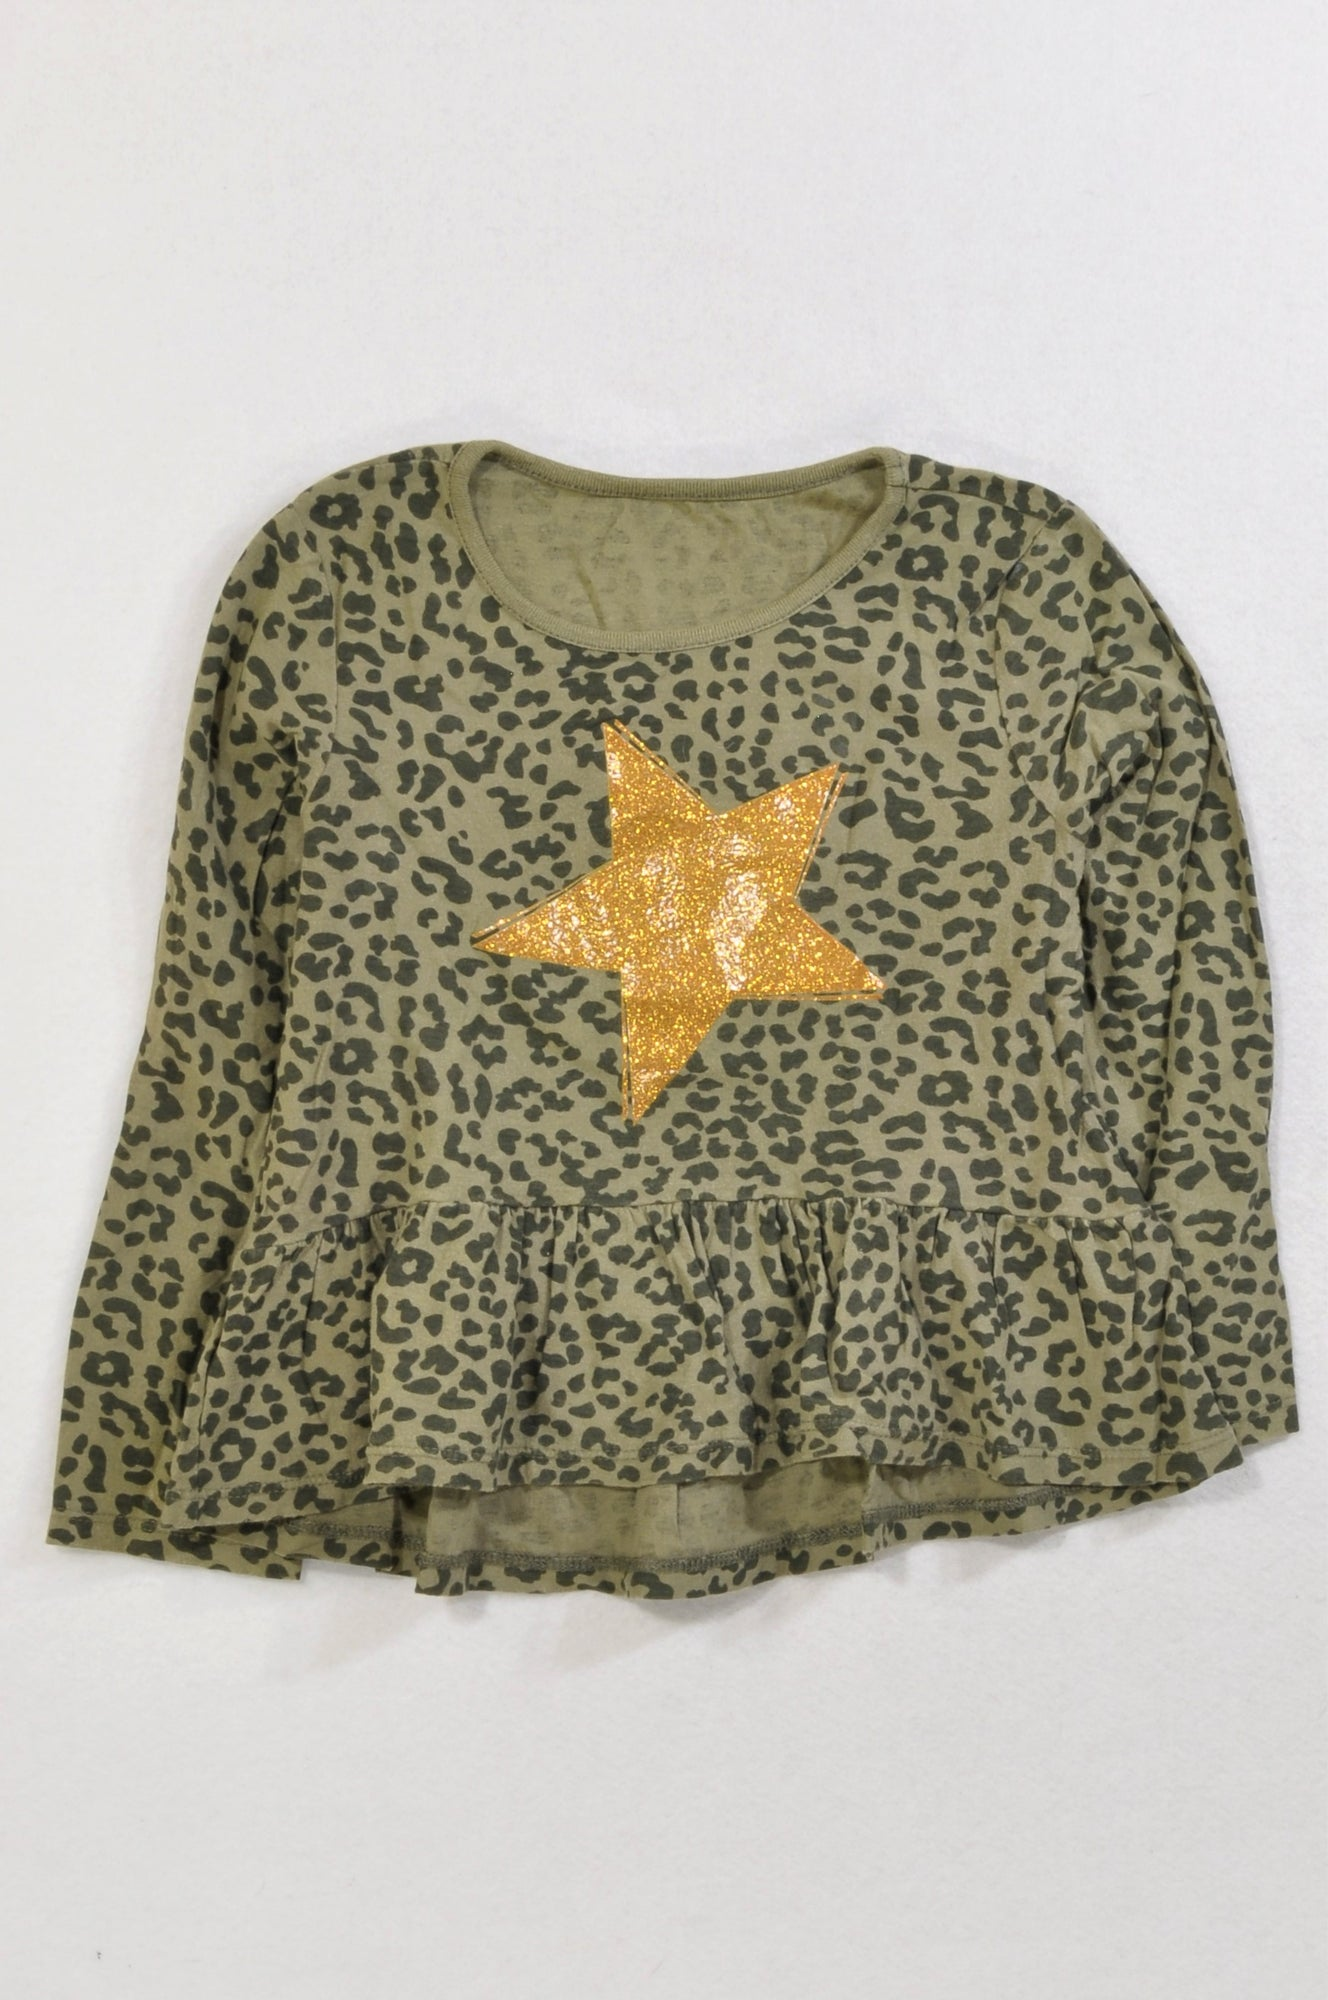 0cac62e9307 Woolworths Olive Leopard Print Gold Star Baby Doll T-shirt Girls 5-6 years